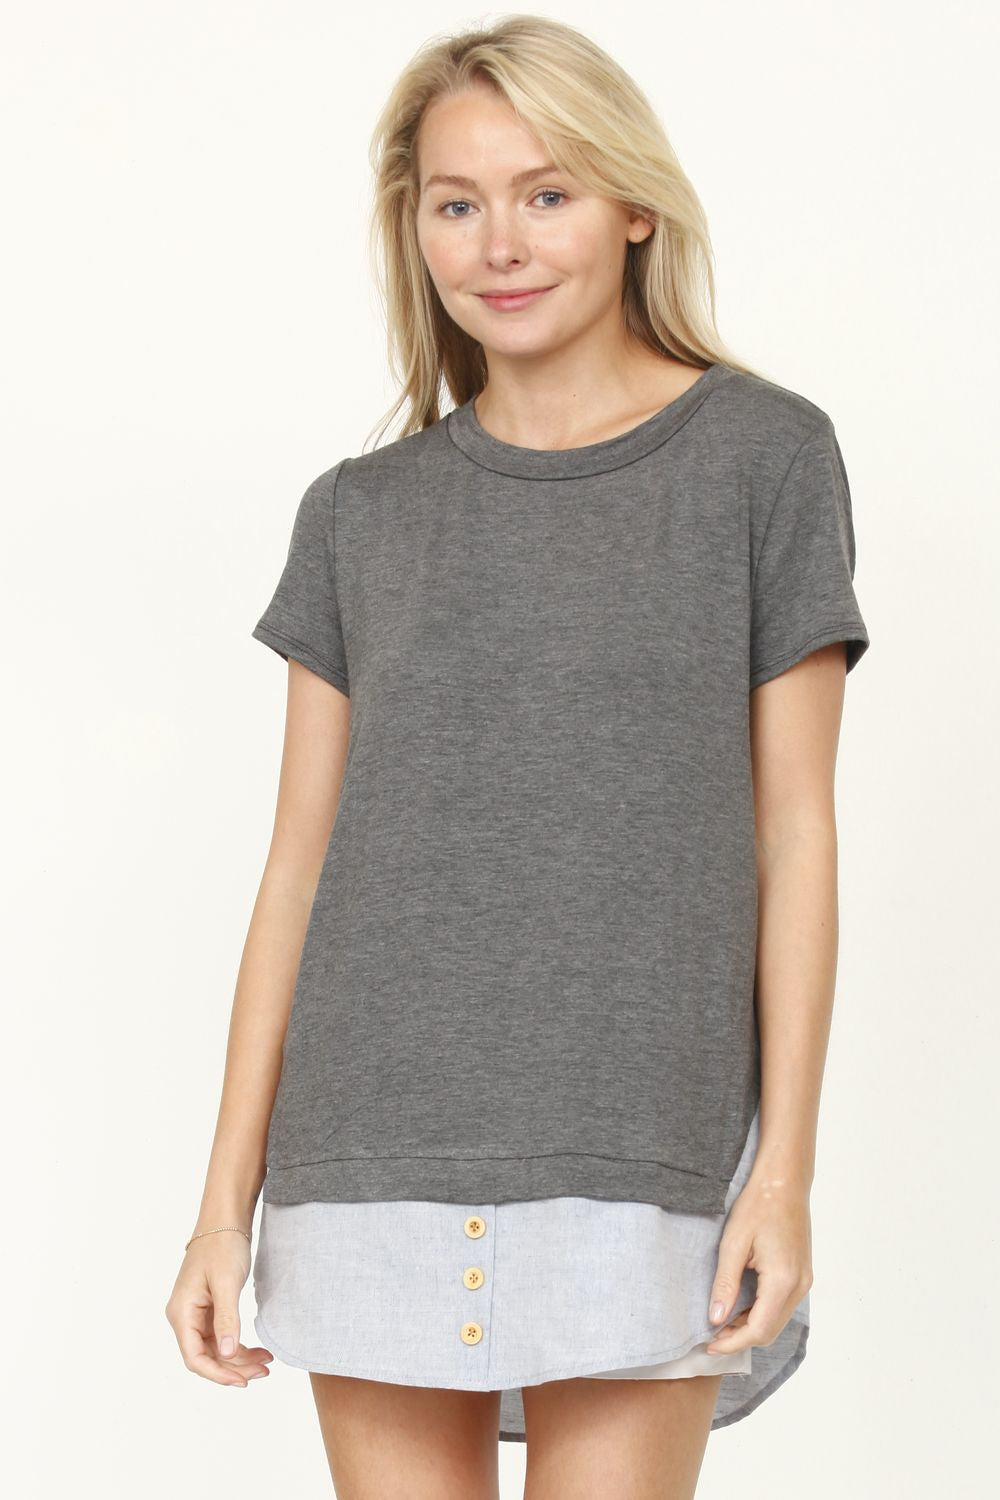 Charcoal Chambray Layered Top